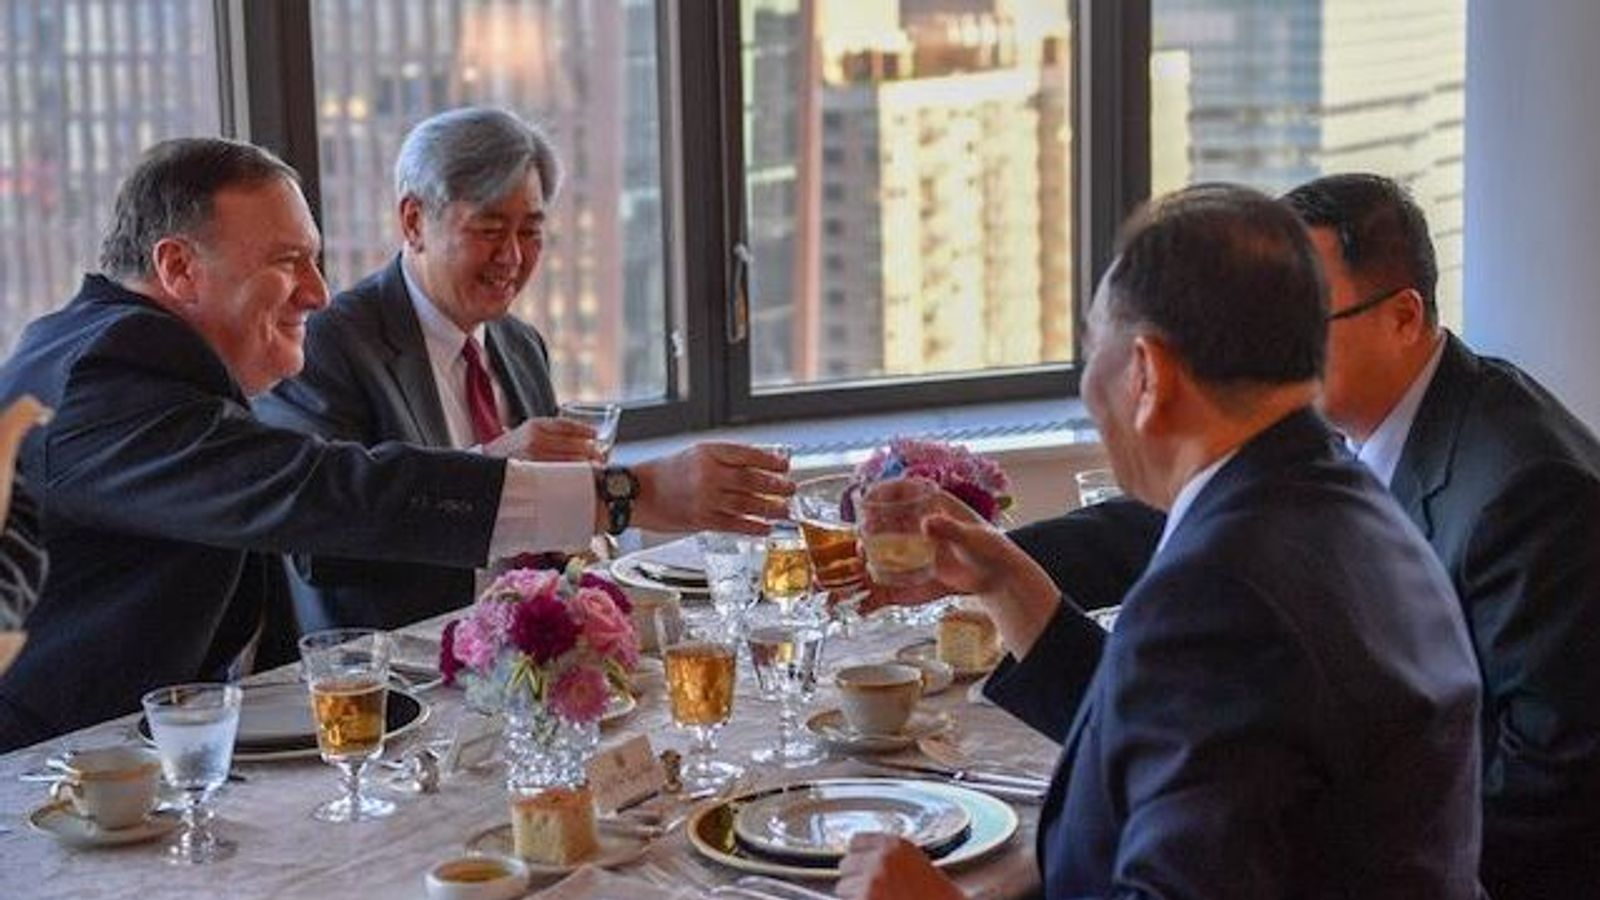 US secretary of state has 'good' meeting with top North Korean official in New York